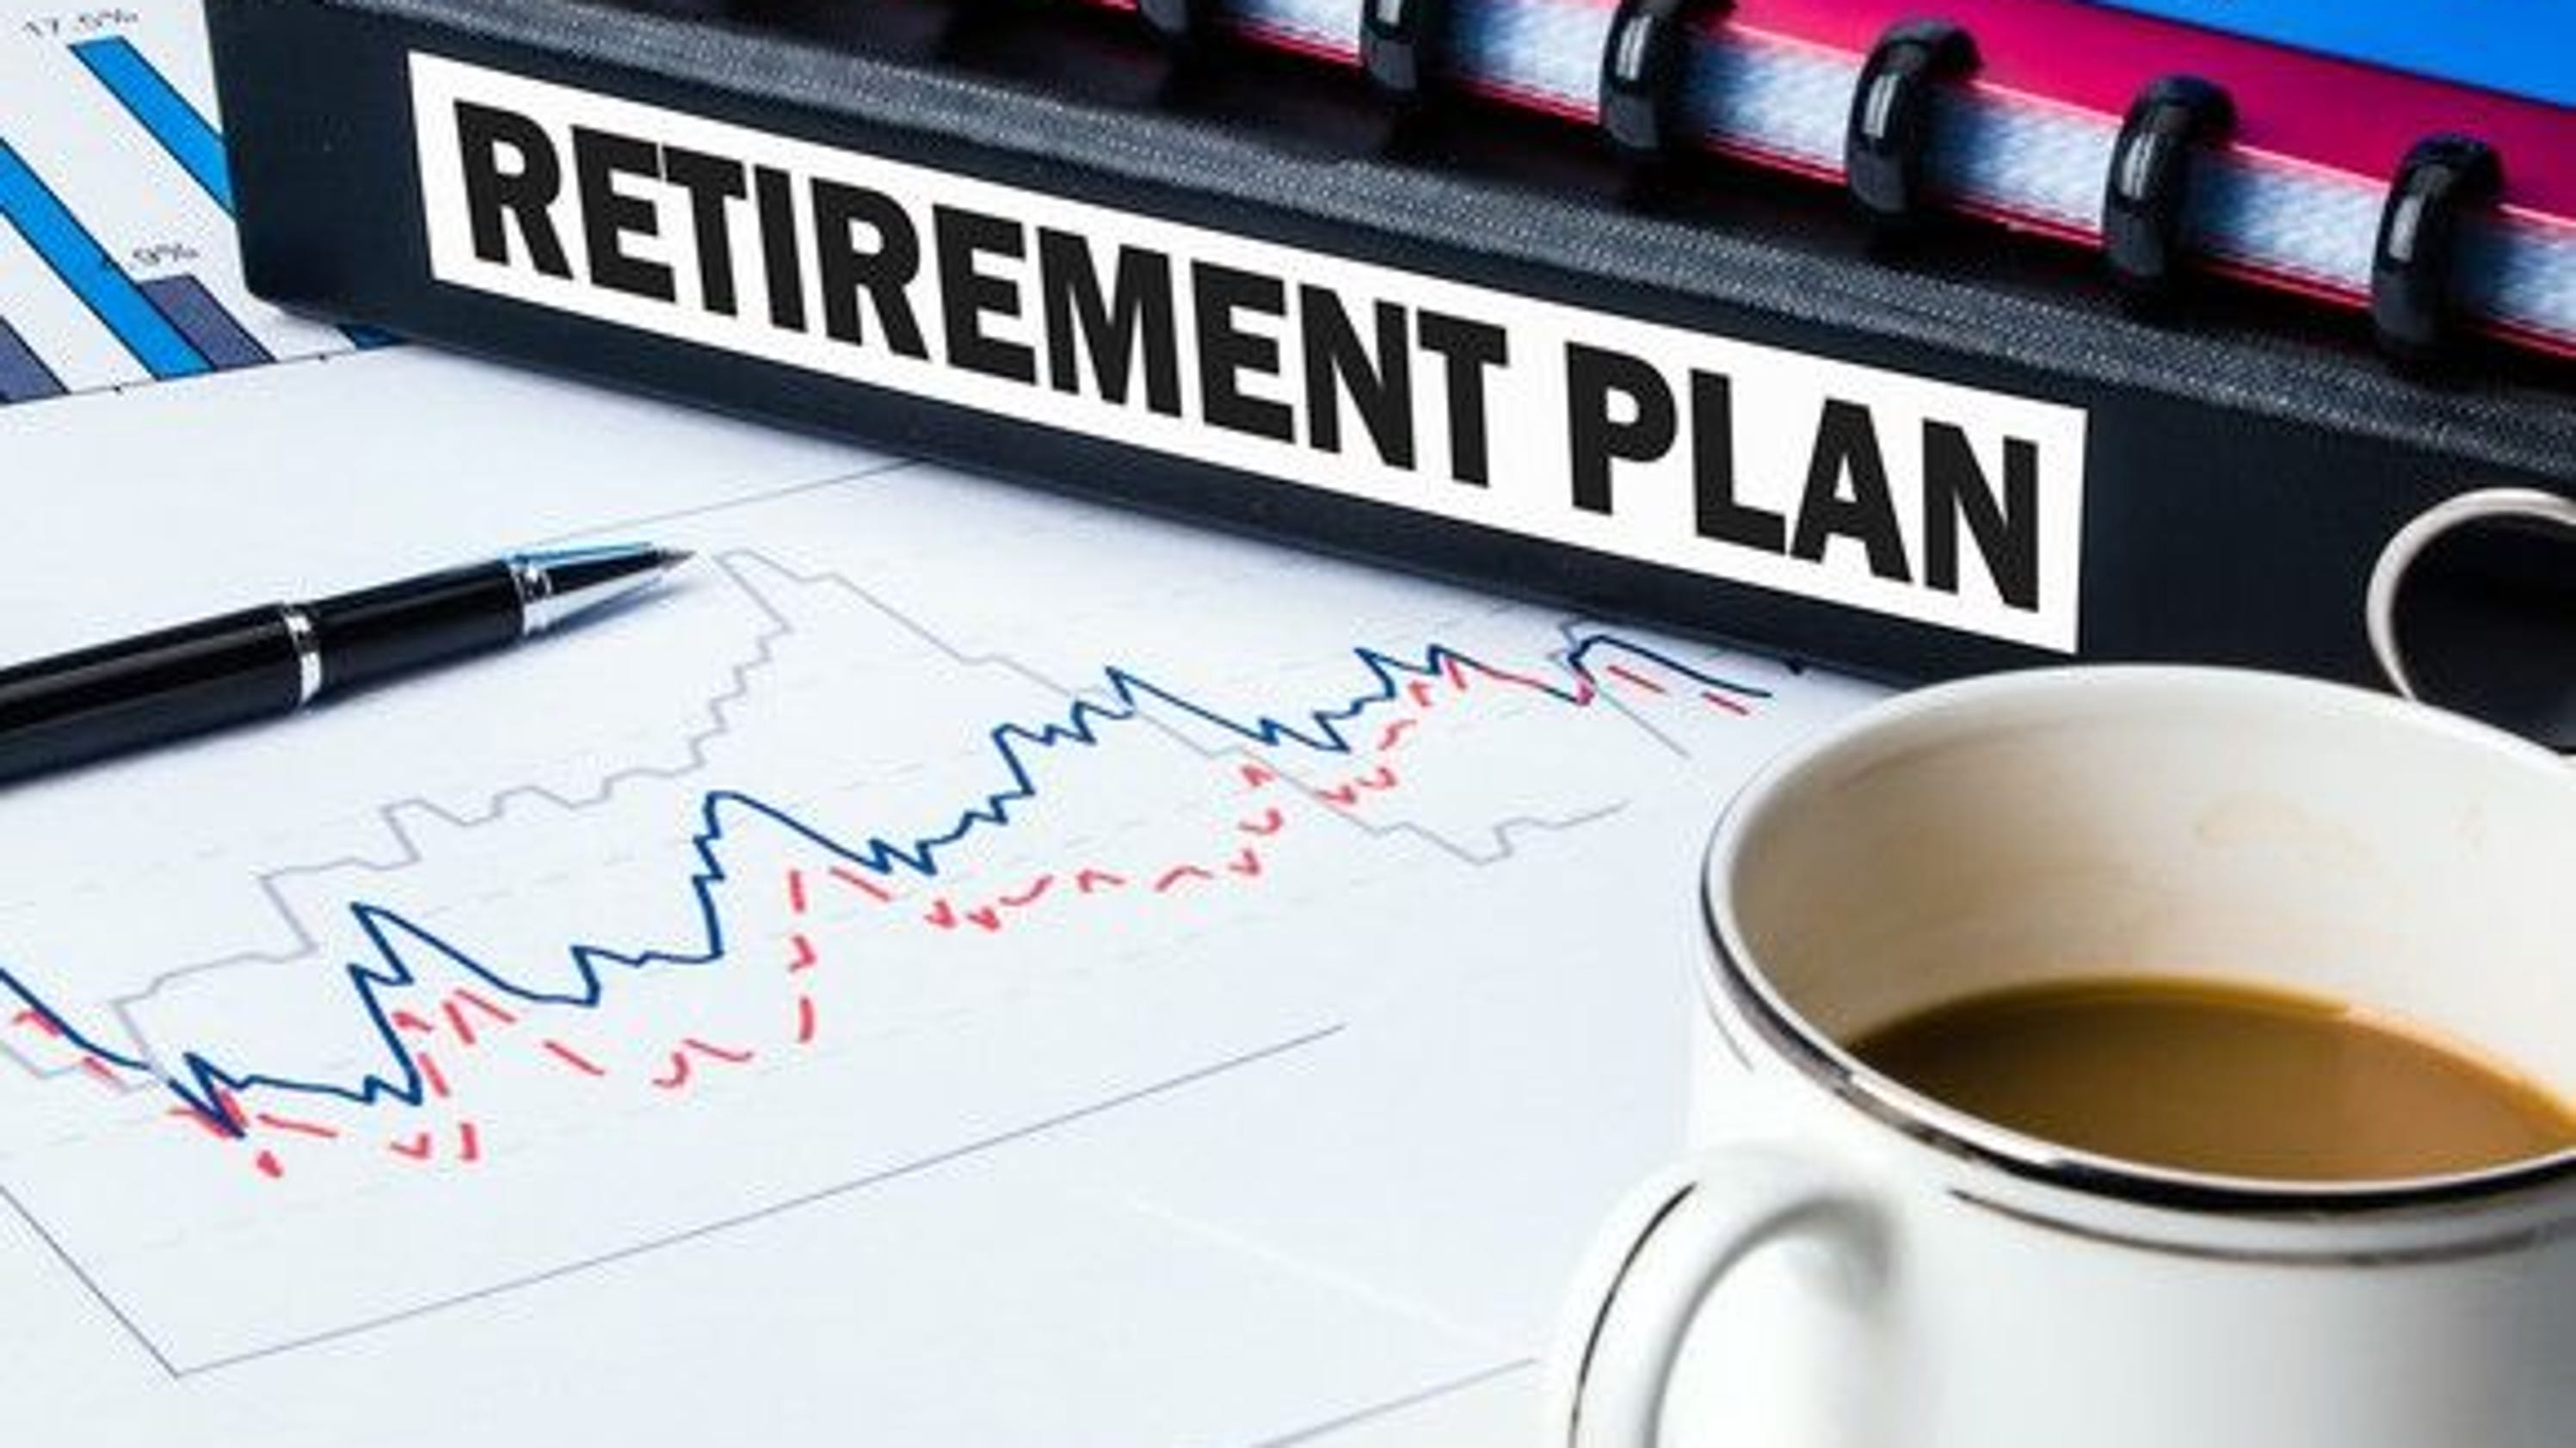 5 steps to ease your worries about money, health in retirement